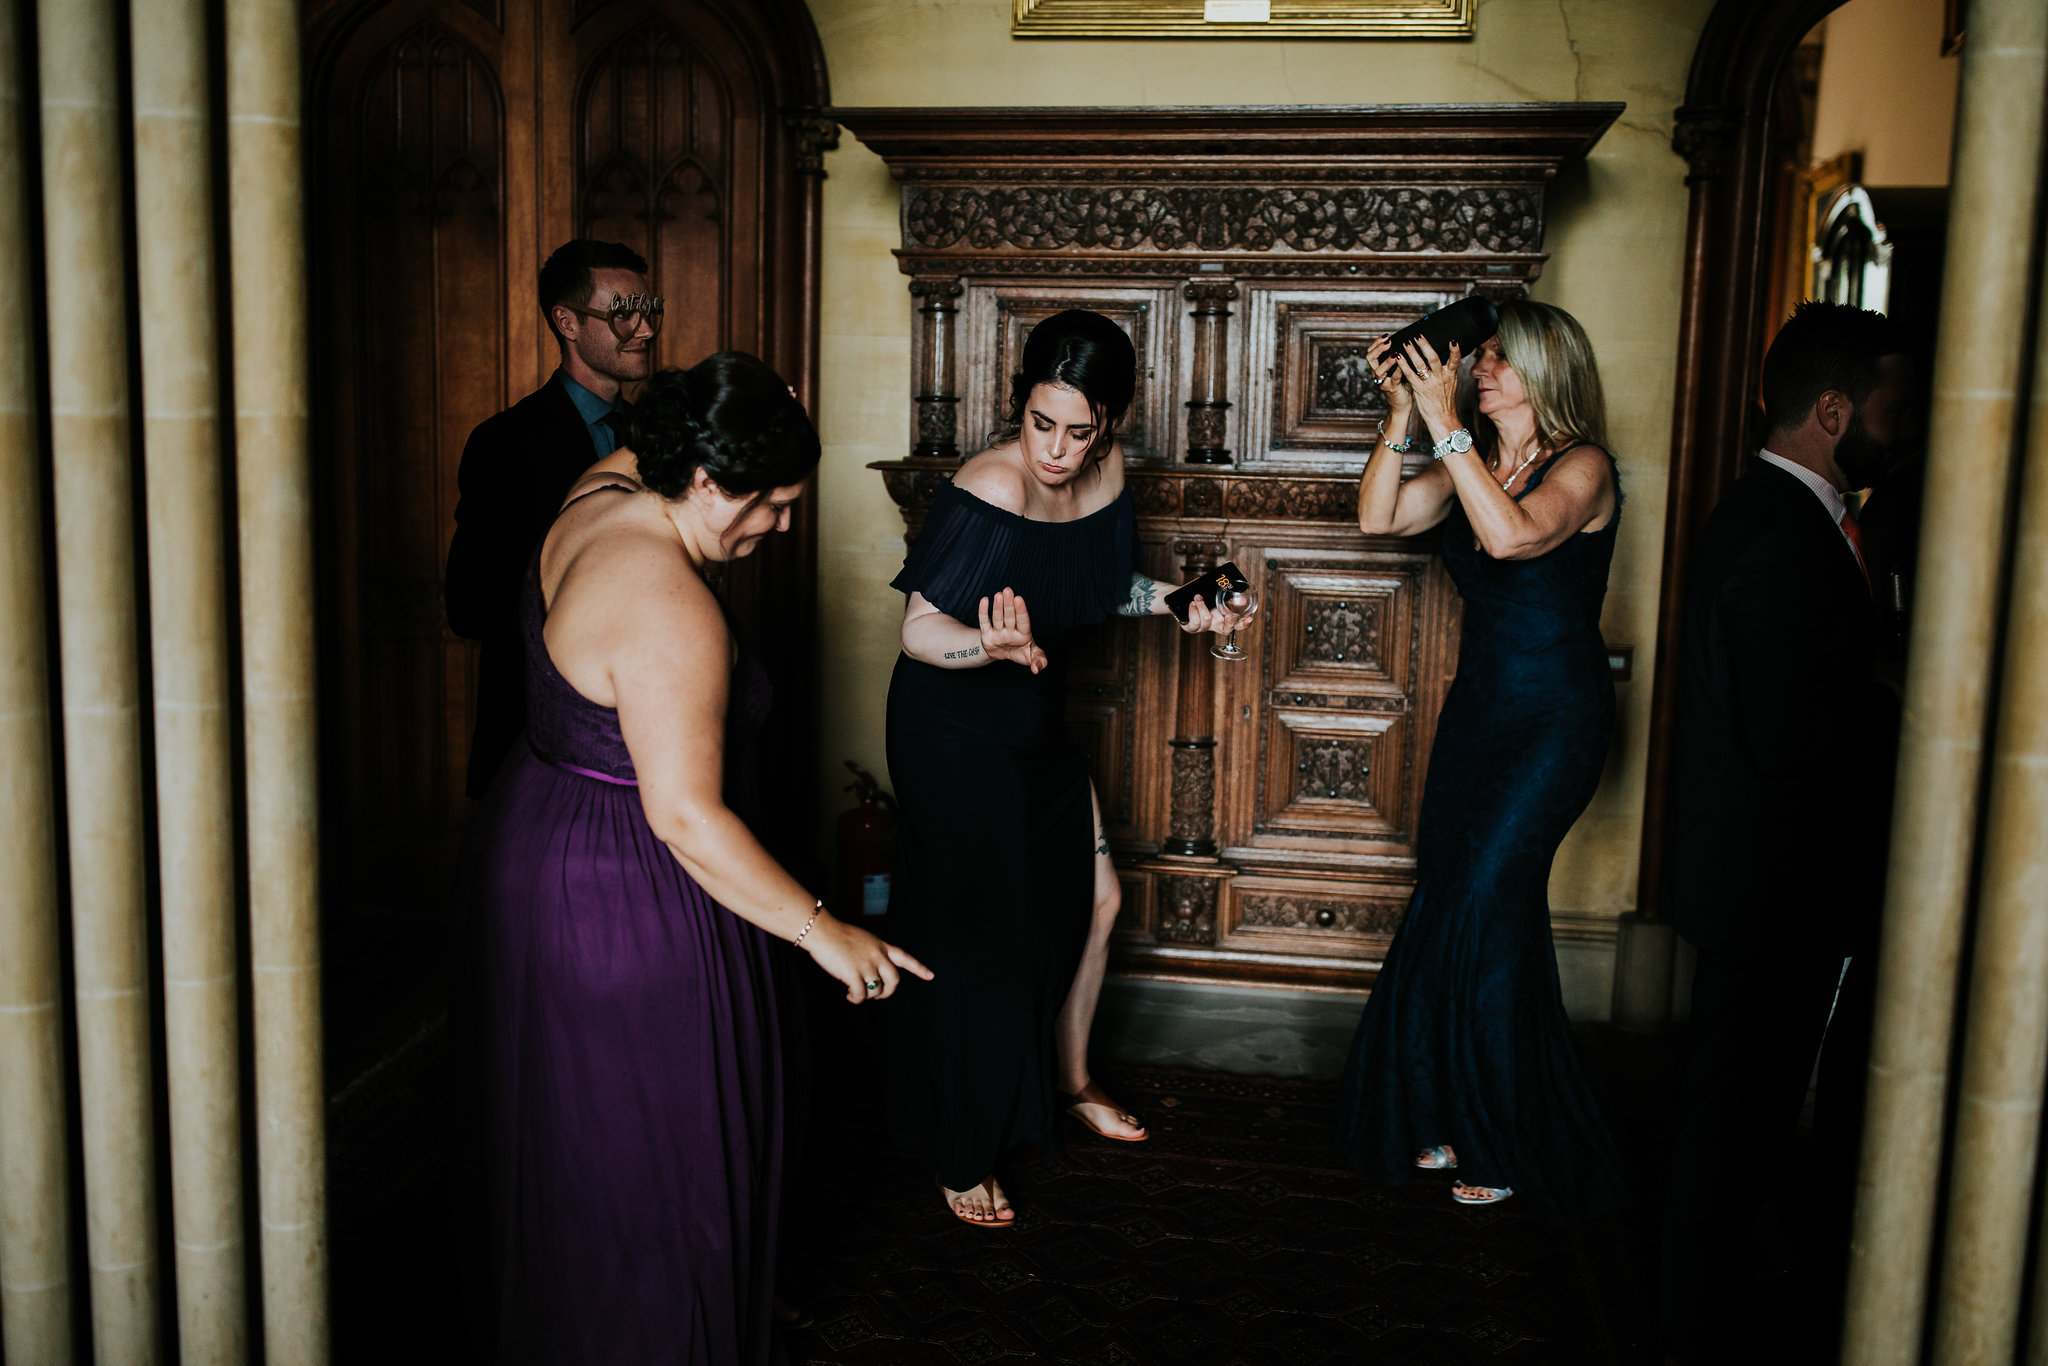 Duns_Castle_wedding_photographer_ross_alexander_photography (94).jpg